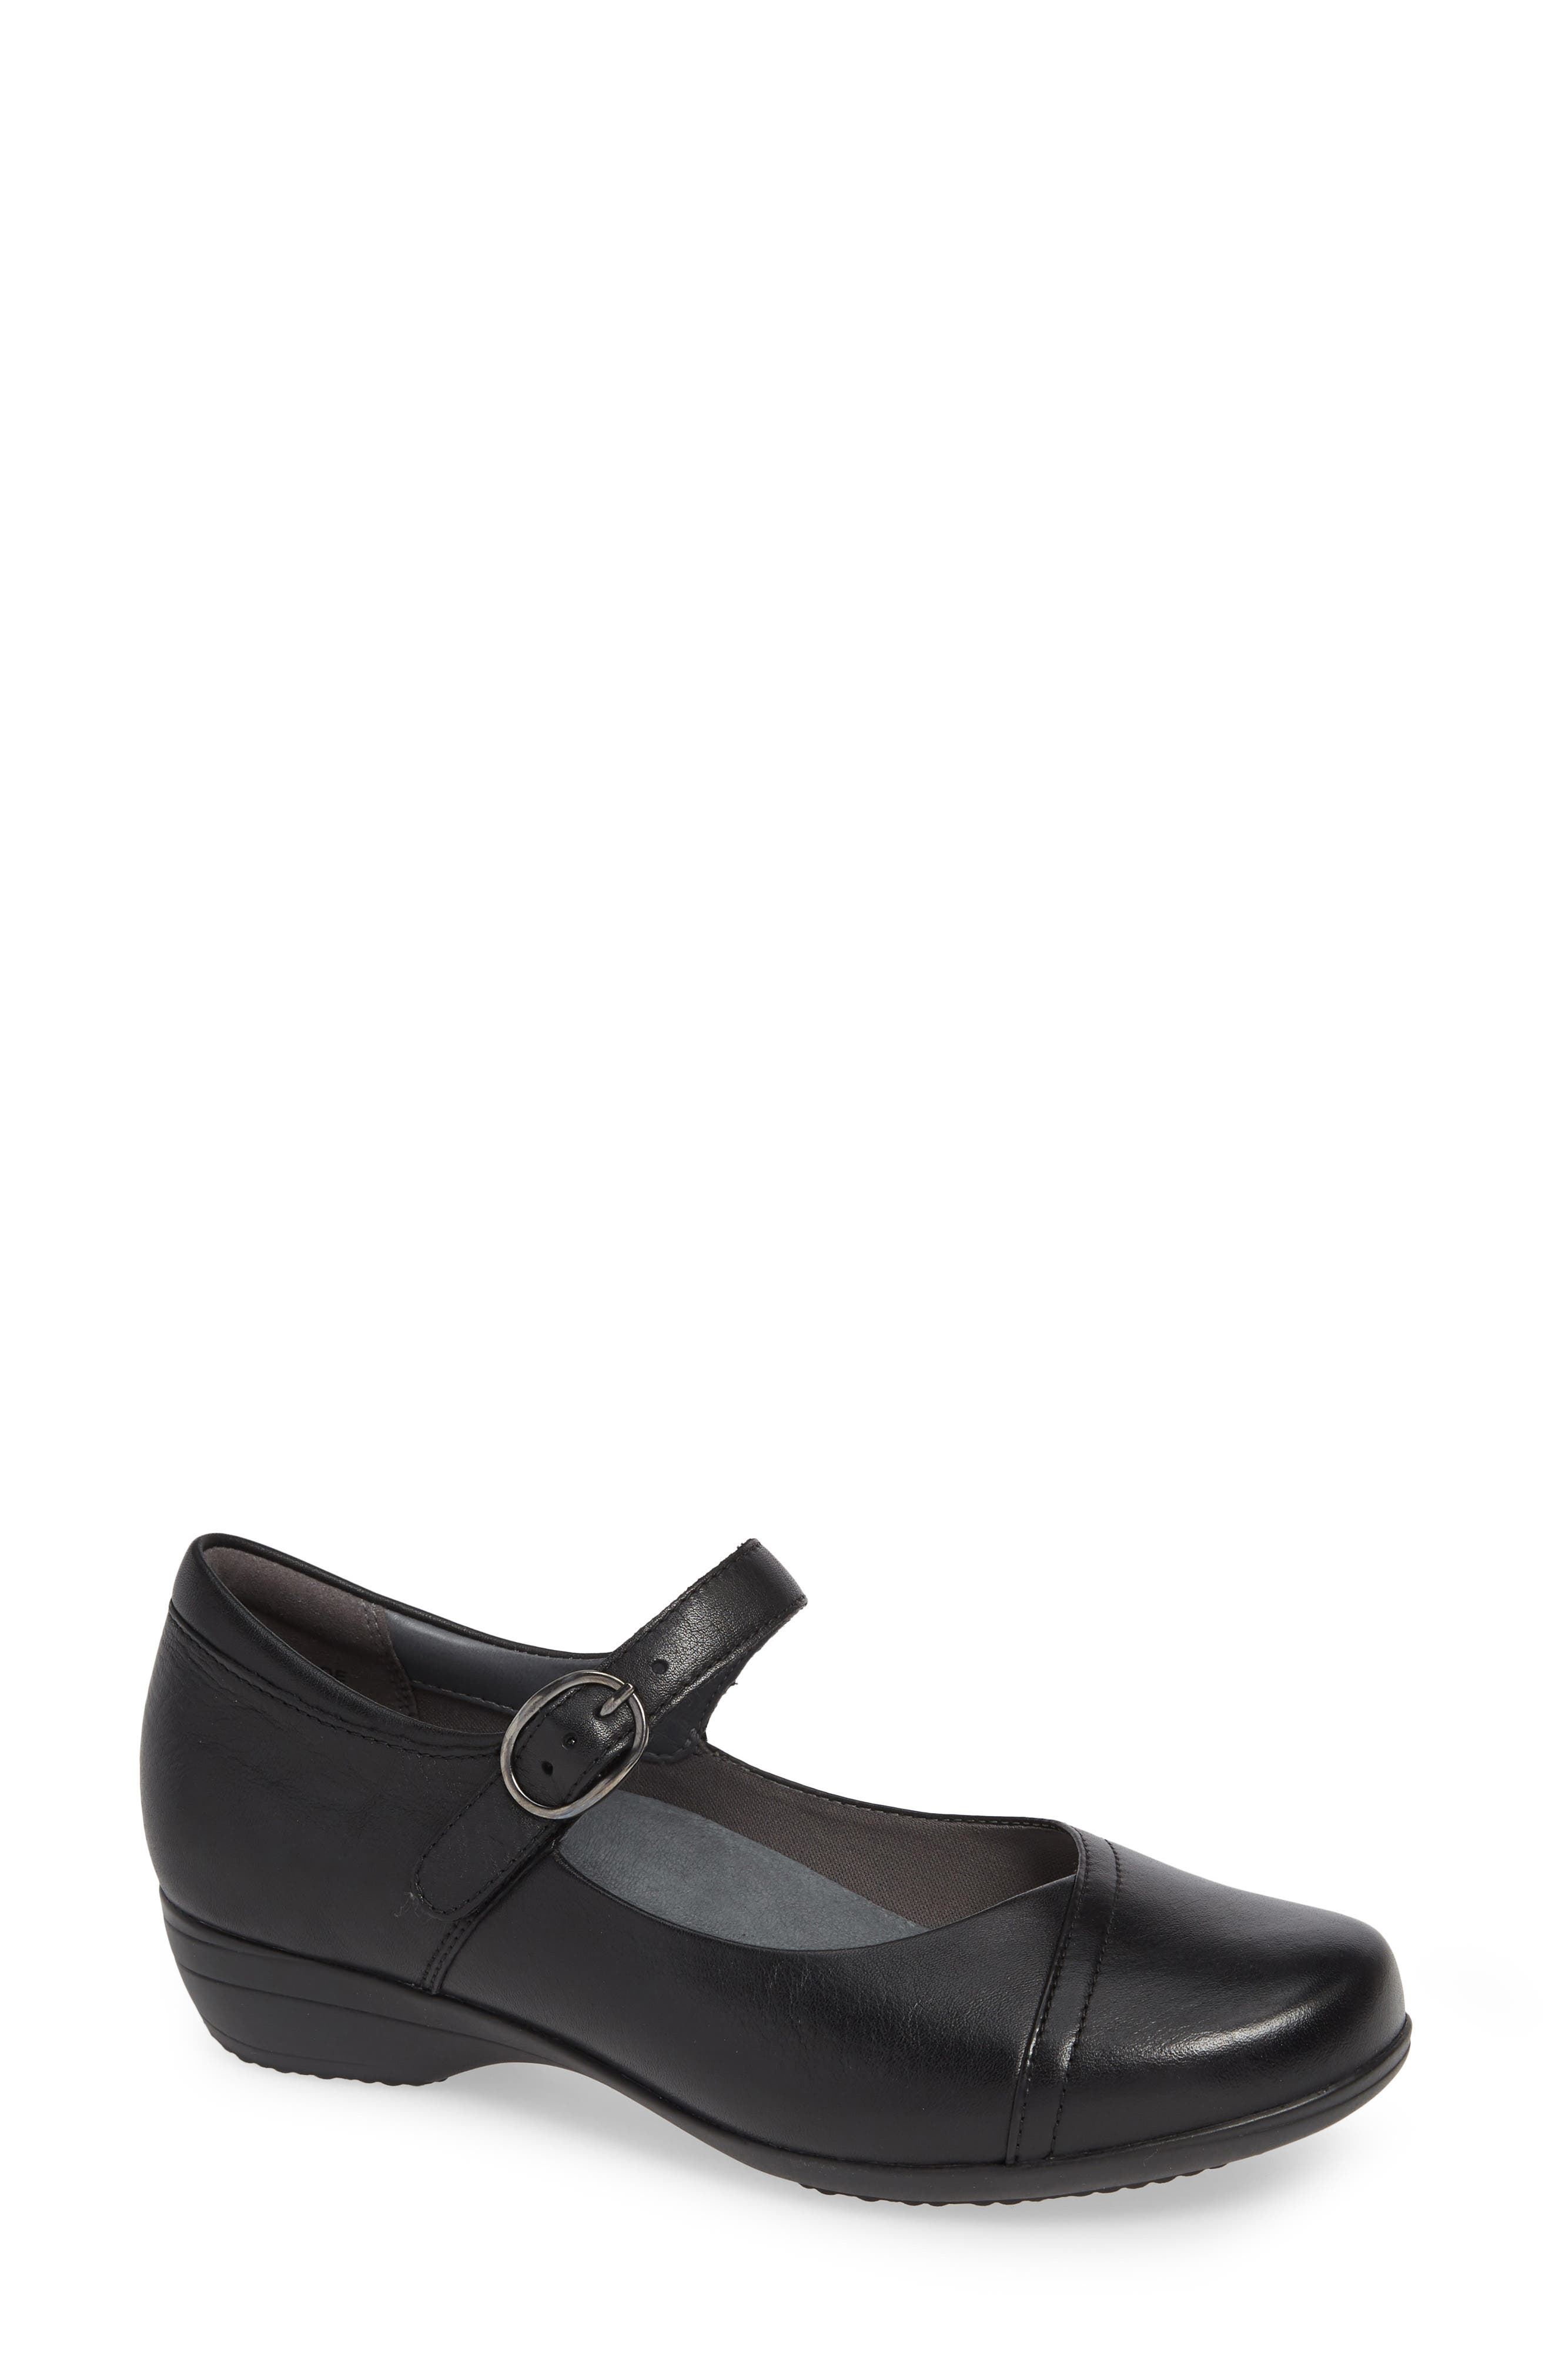 Fawna Mary Jane Flat,                             Main thumbnail 1, color,                             BLACK MILLED LEATHER